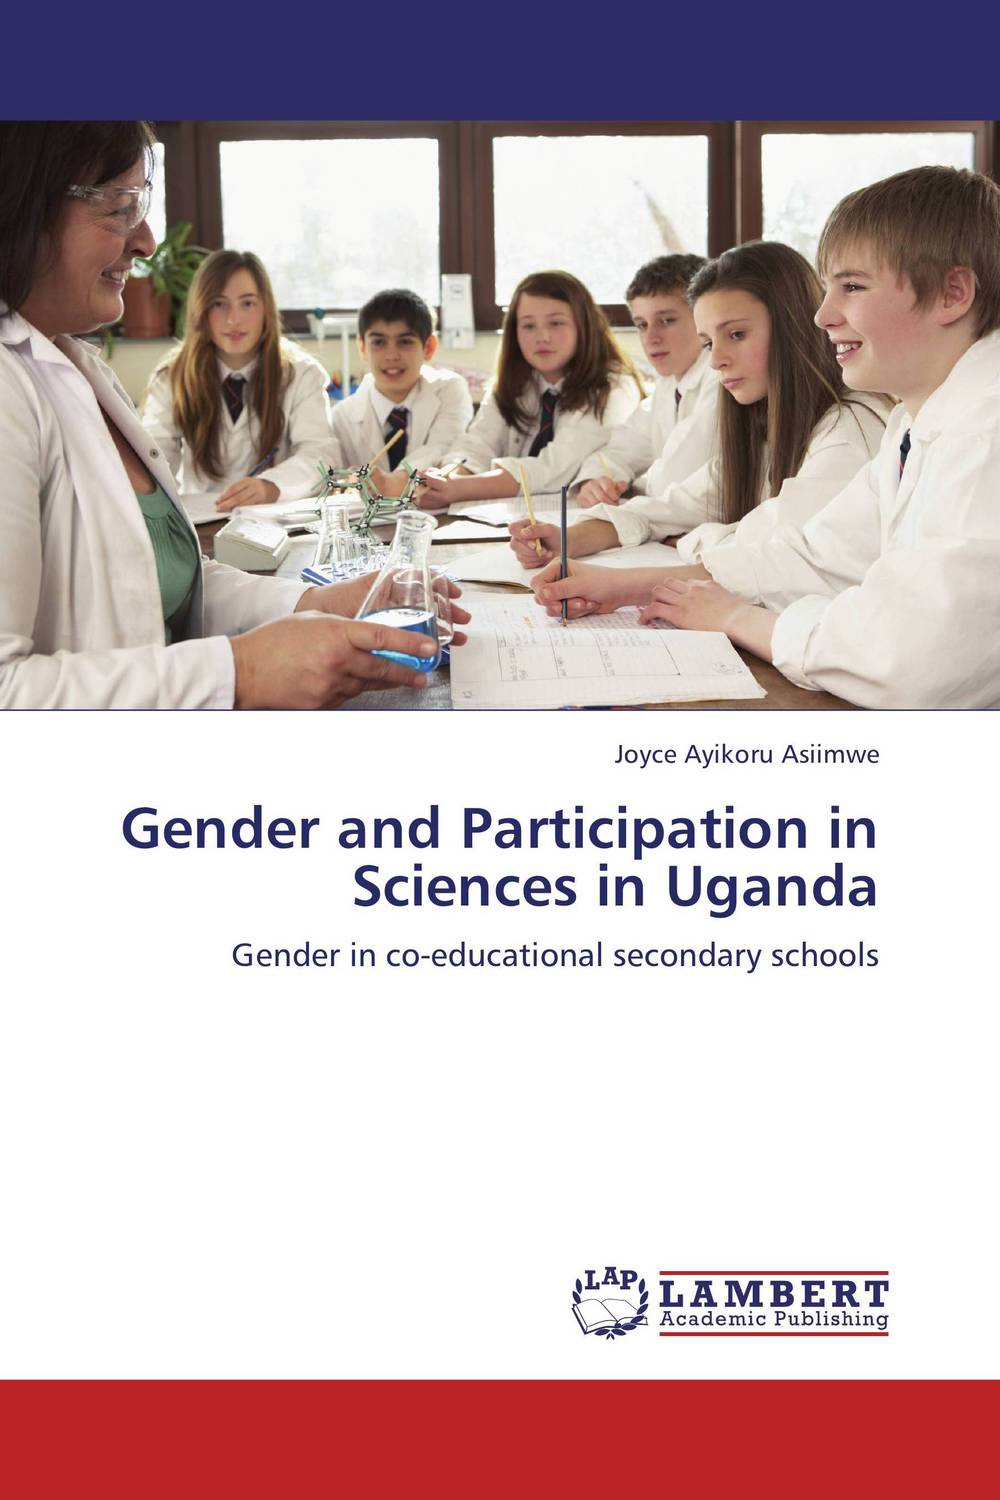 Gender and Participation in Sciences in Uganda 12417 cmam brain19 half size human nervous system study model medical science educational teaching anatomical models